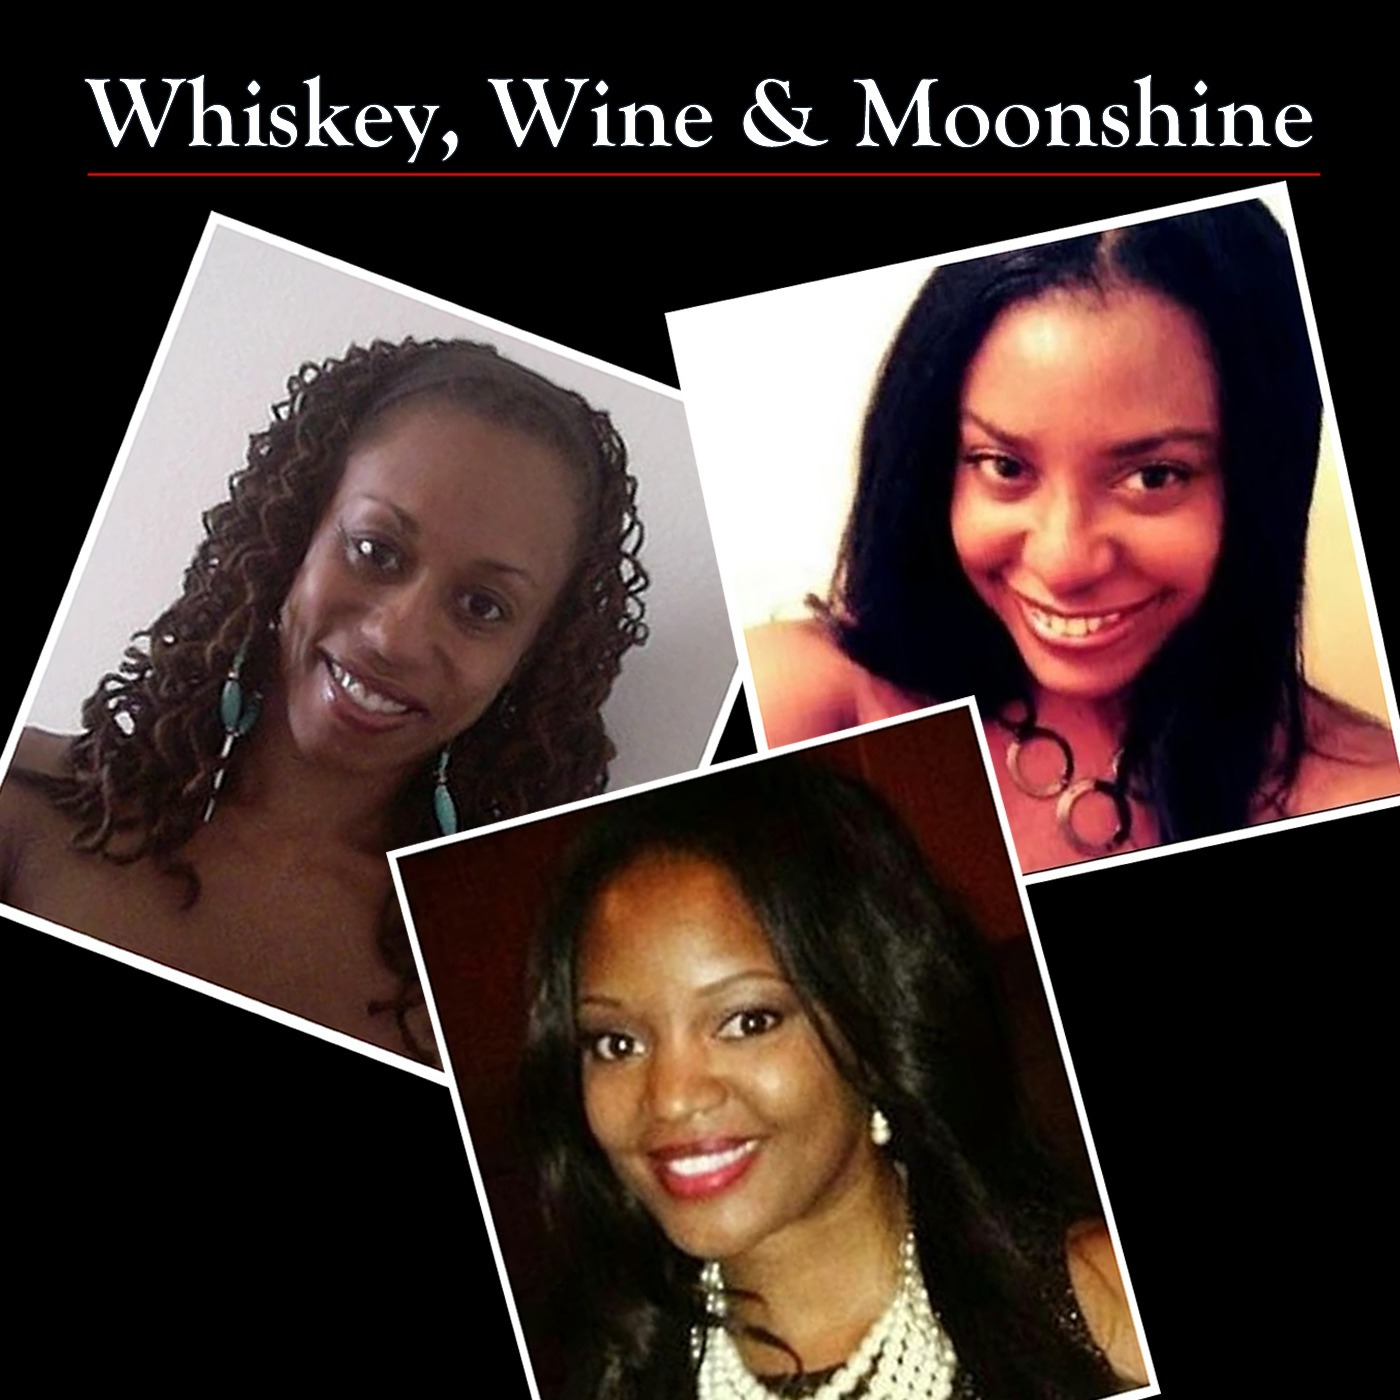 Whiskey, Wine and Moonshine